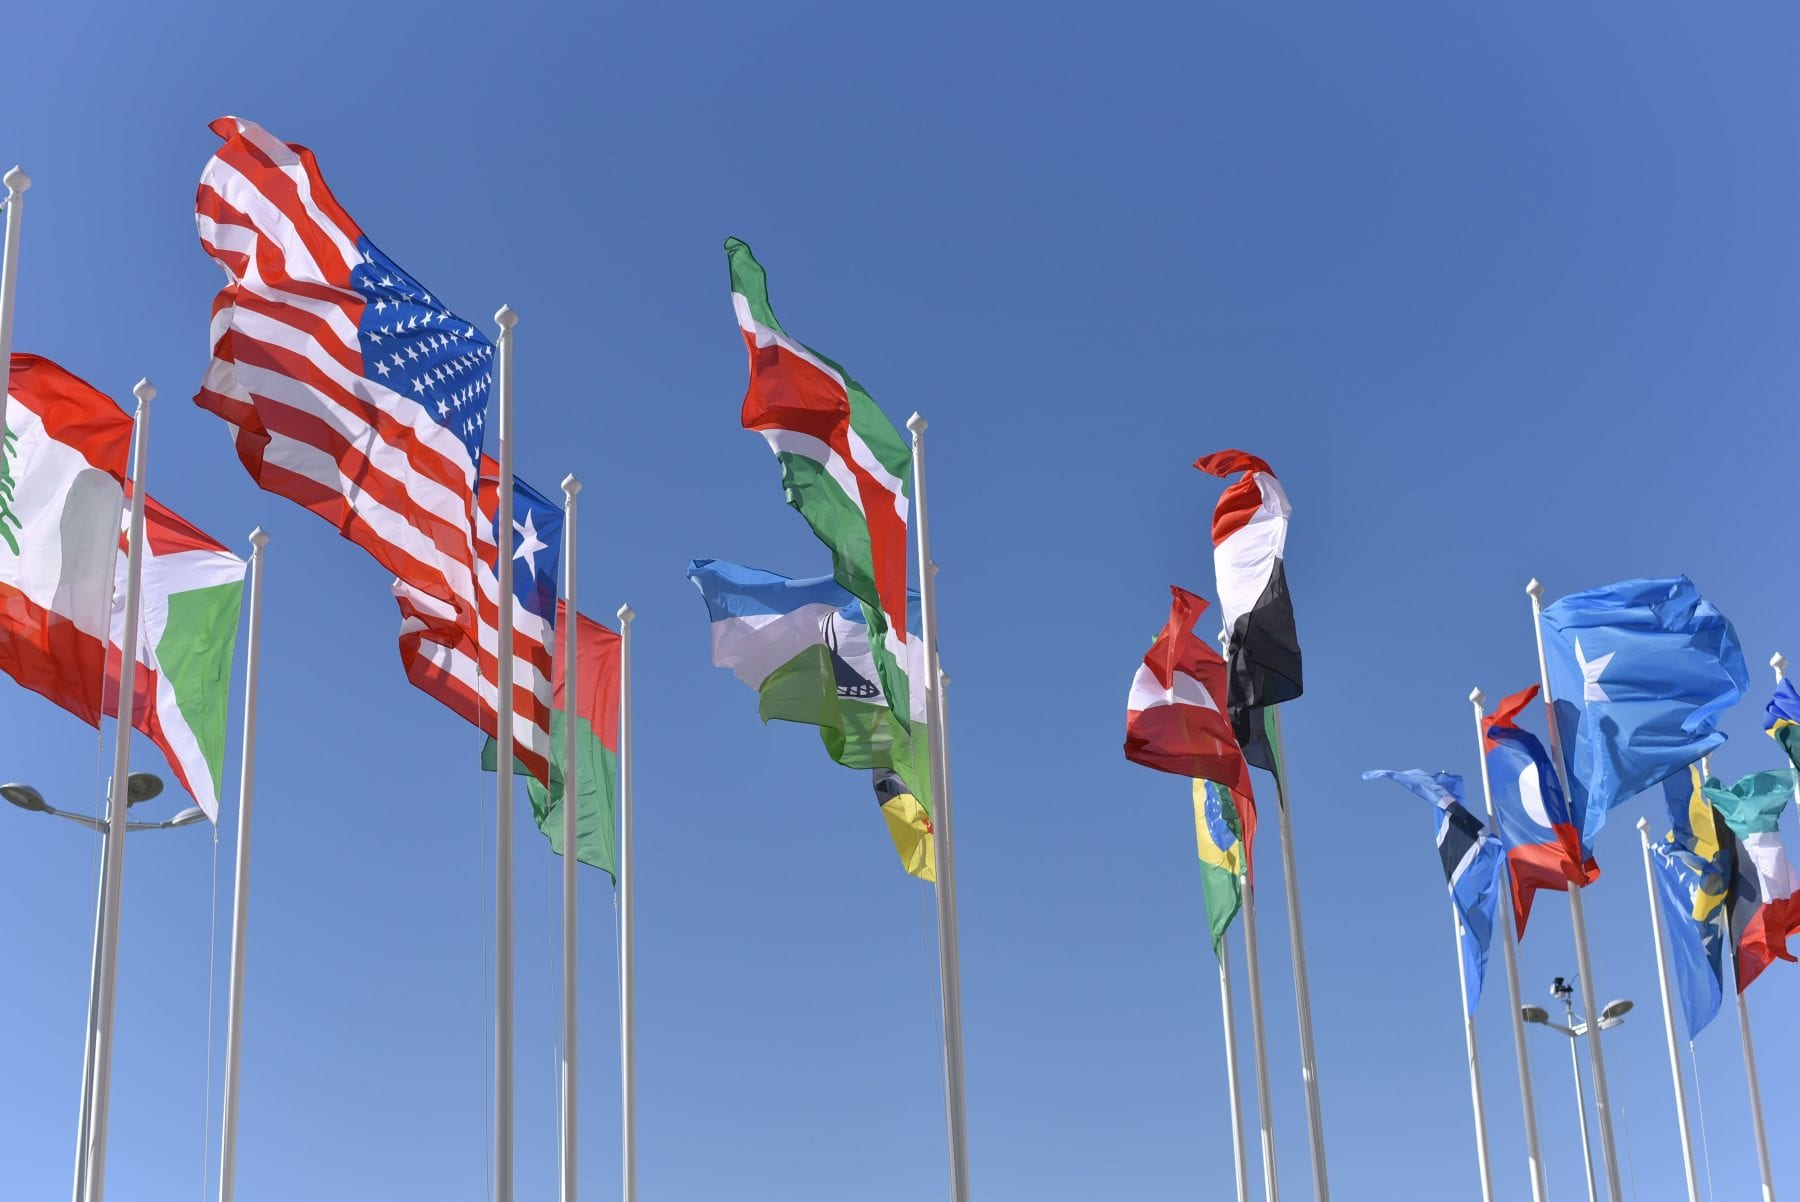 Embassies and Consulates - Flags